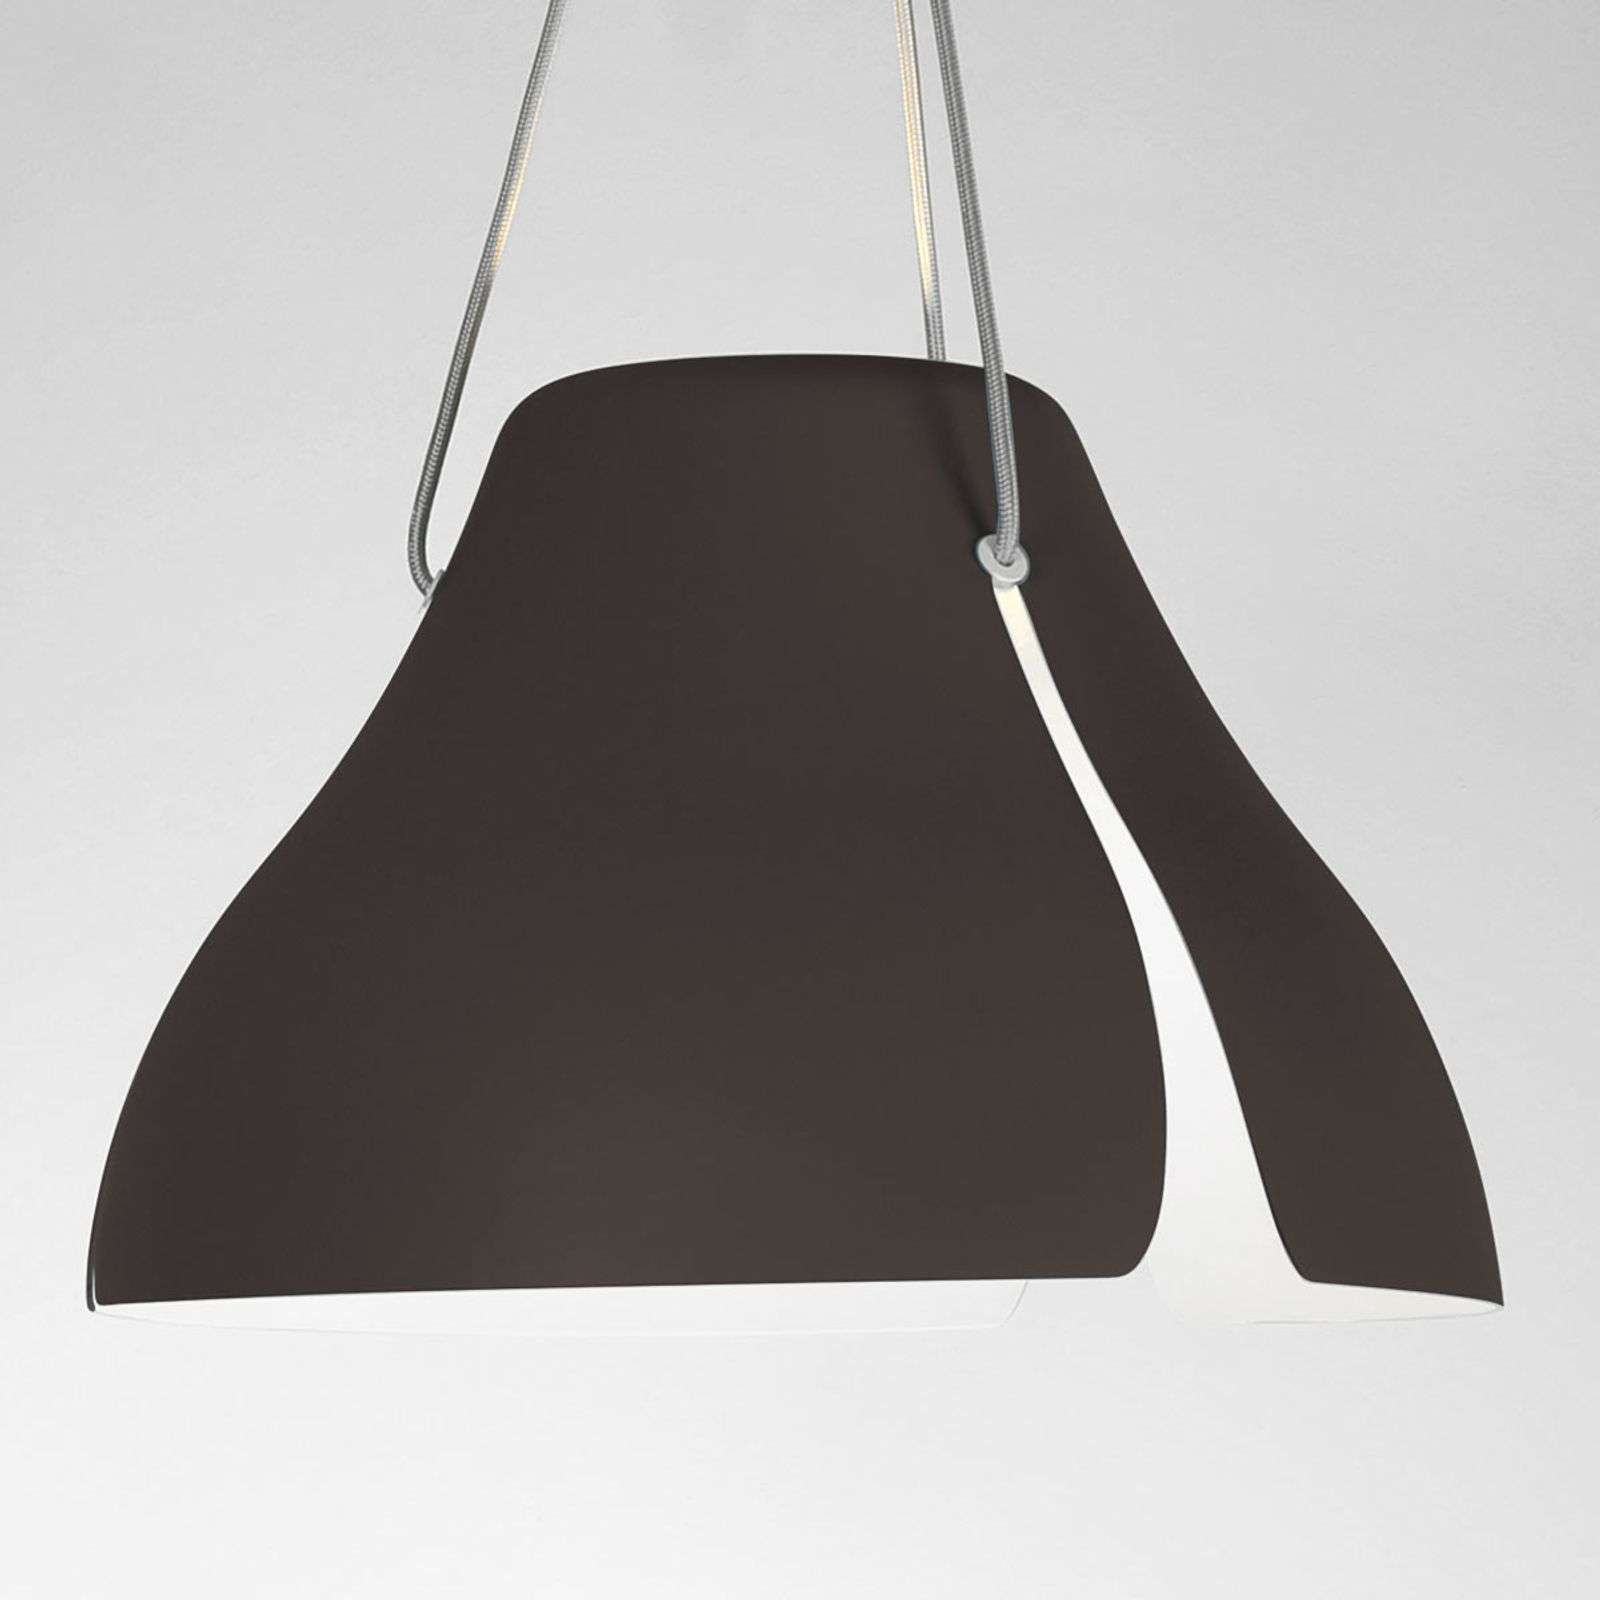 Suspension LED Gingko S40 40 cm brune